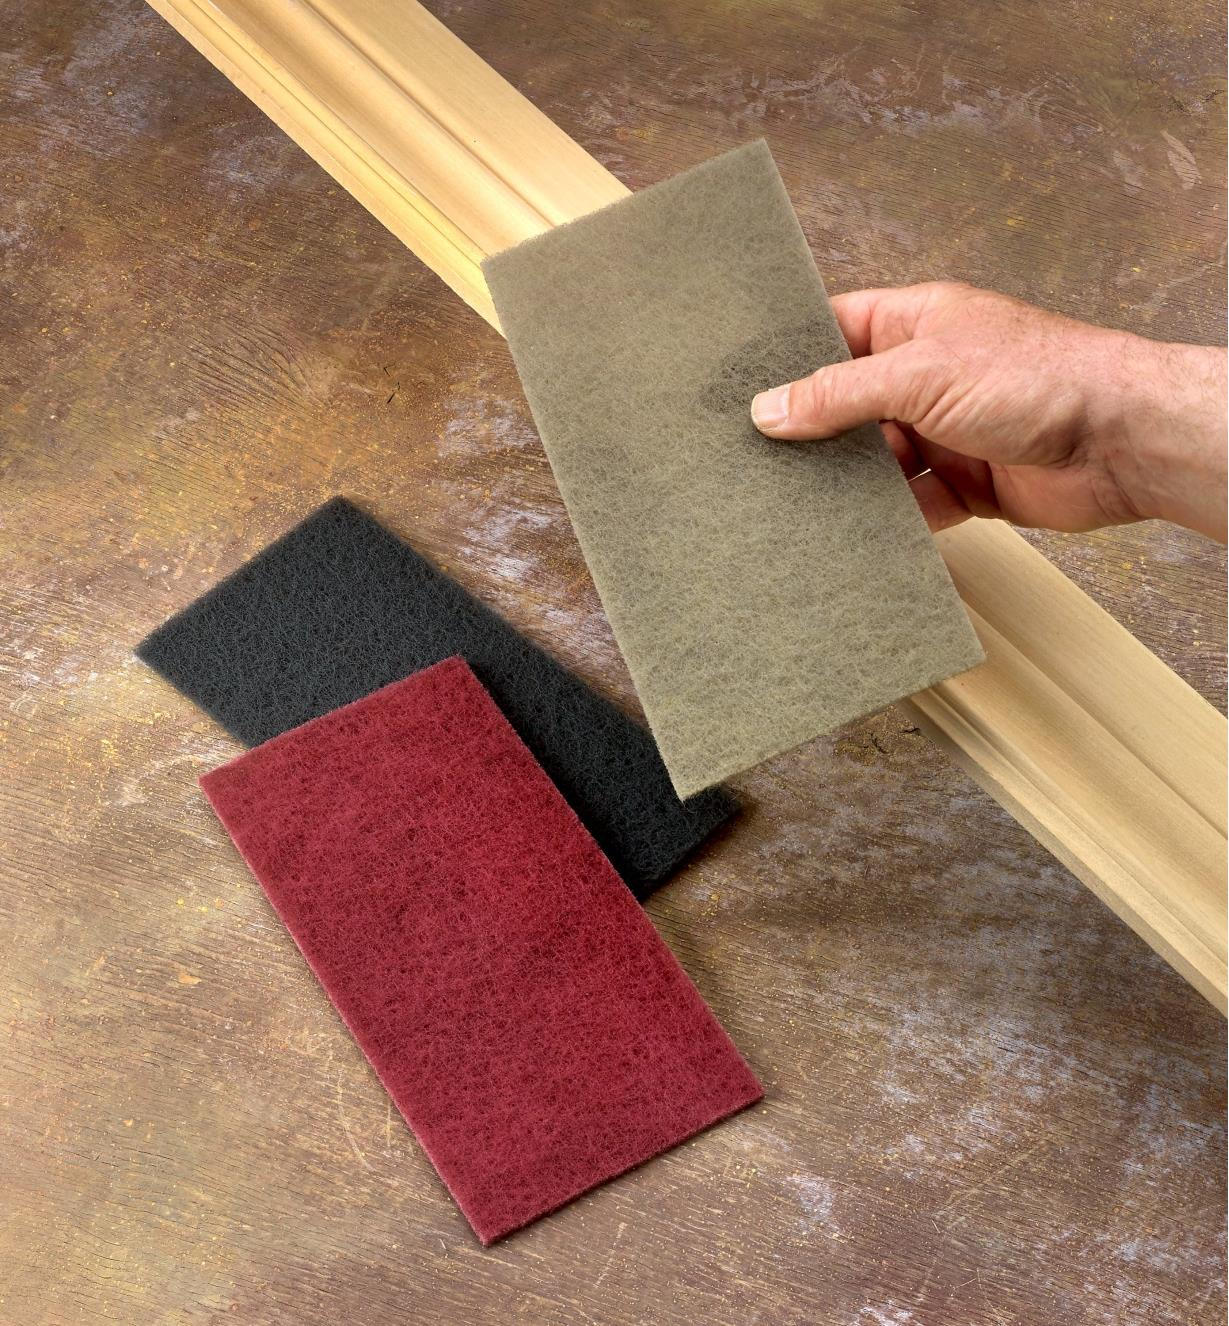 A woodworker prepares to sand a piece of molding with Mirlon Total abrasive pads in various grits